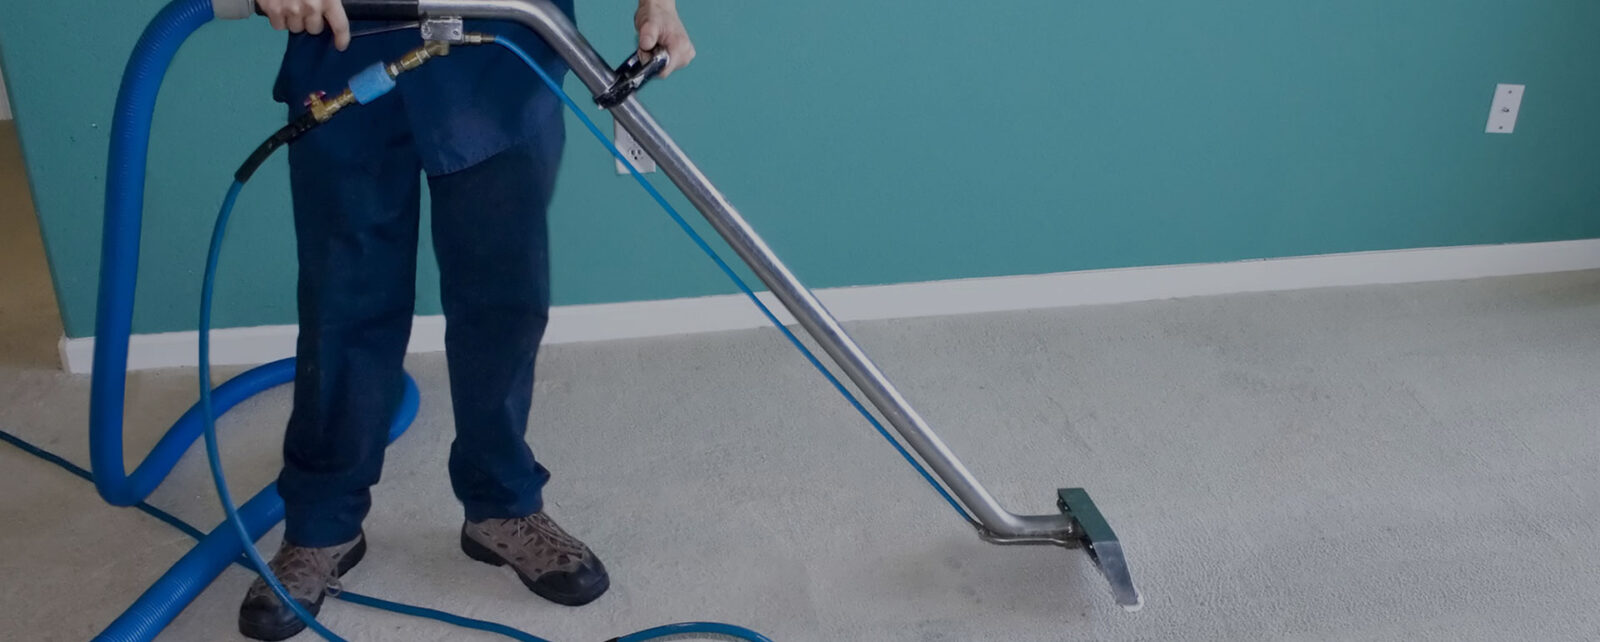 carpet steam cleaning orlando